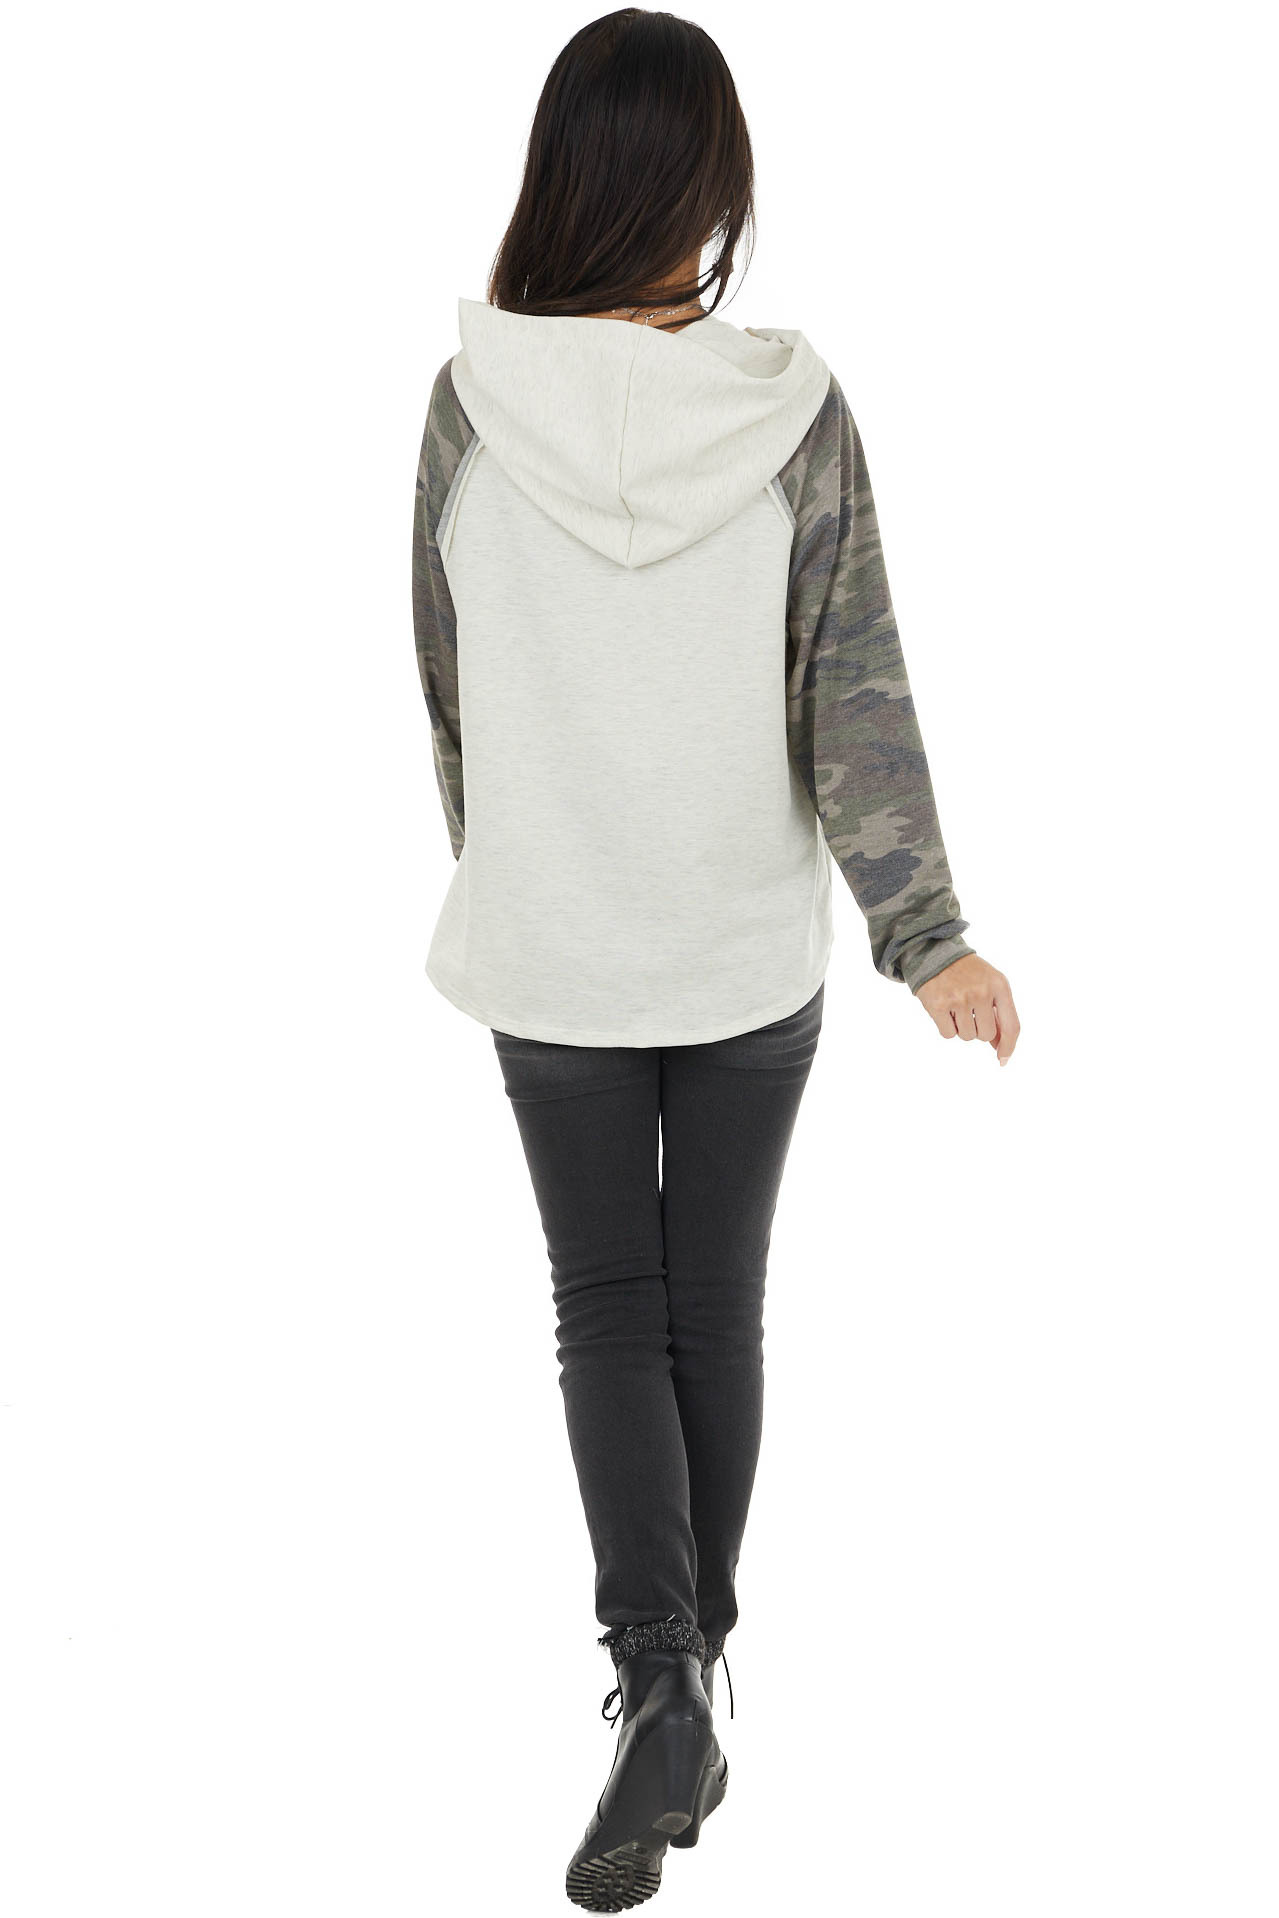 Oatmeal Hoodie Knit Top with Camo Print Contrast Sleeves